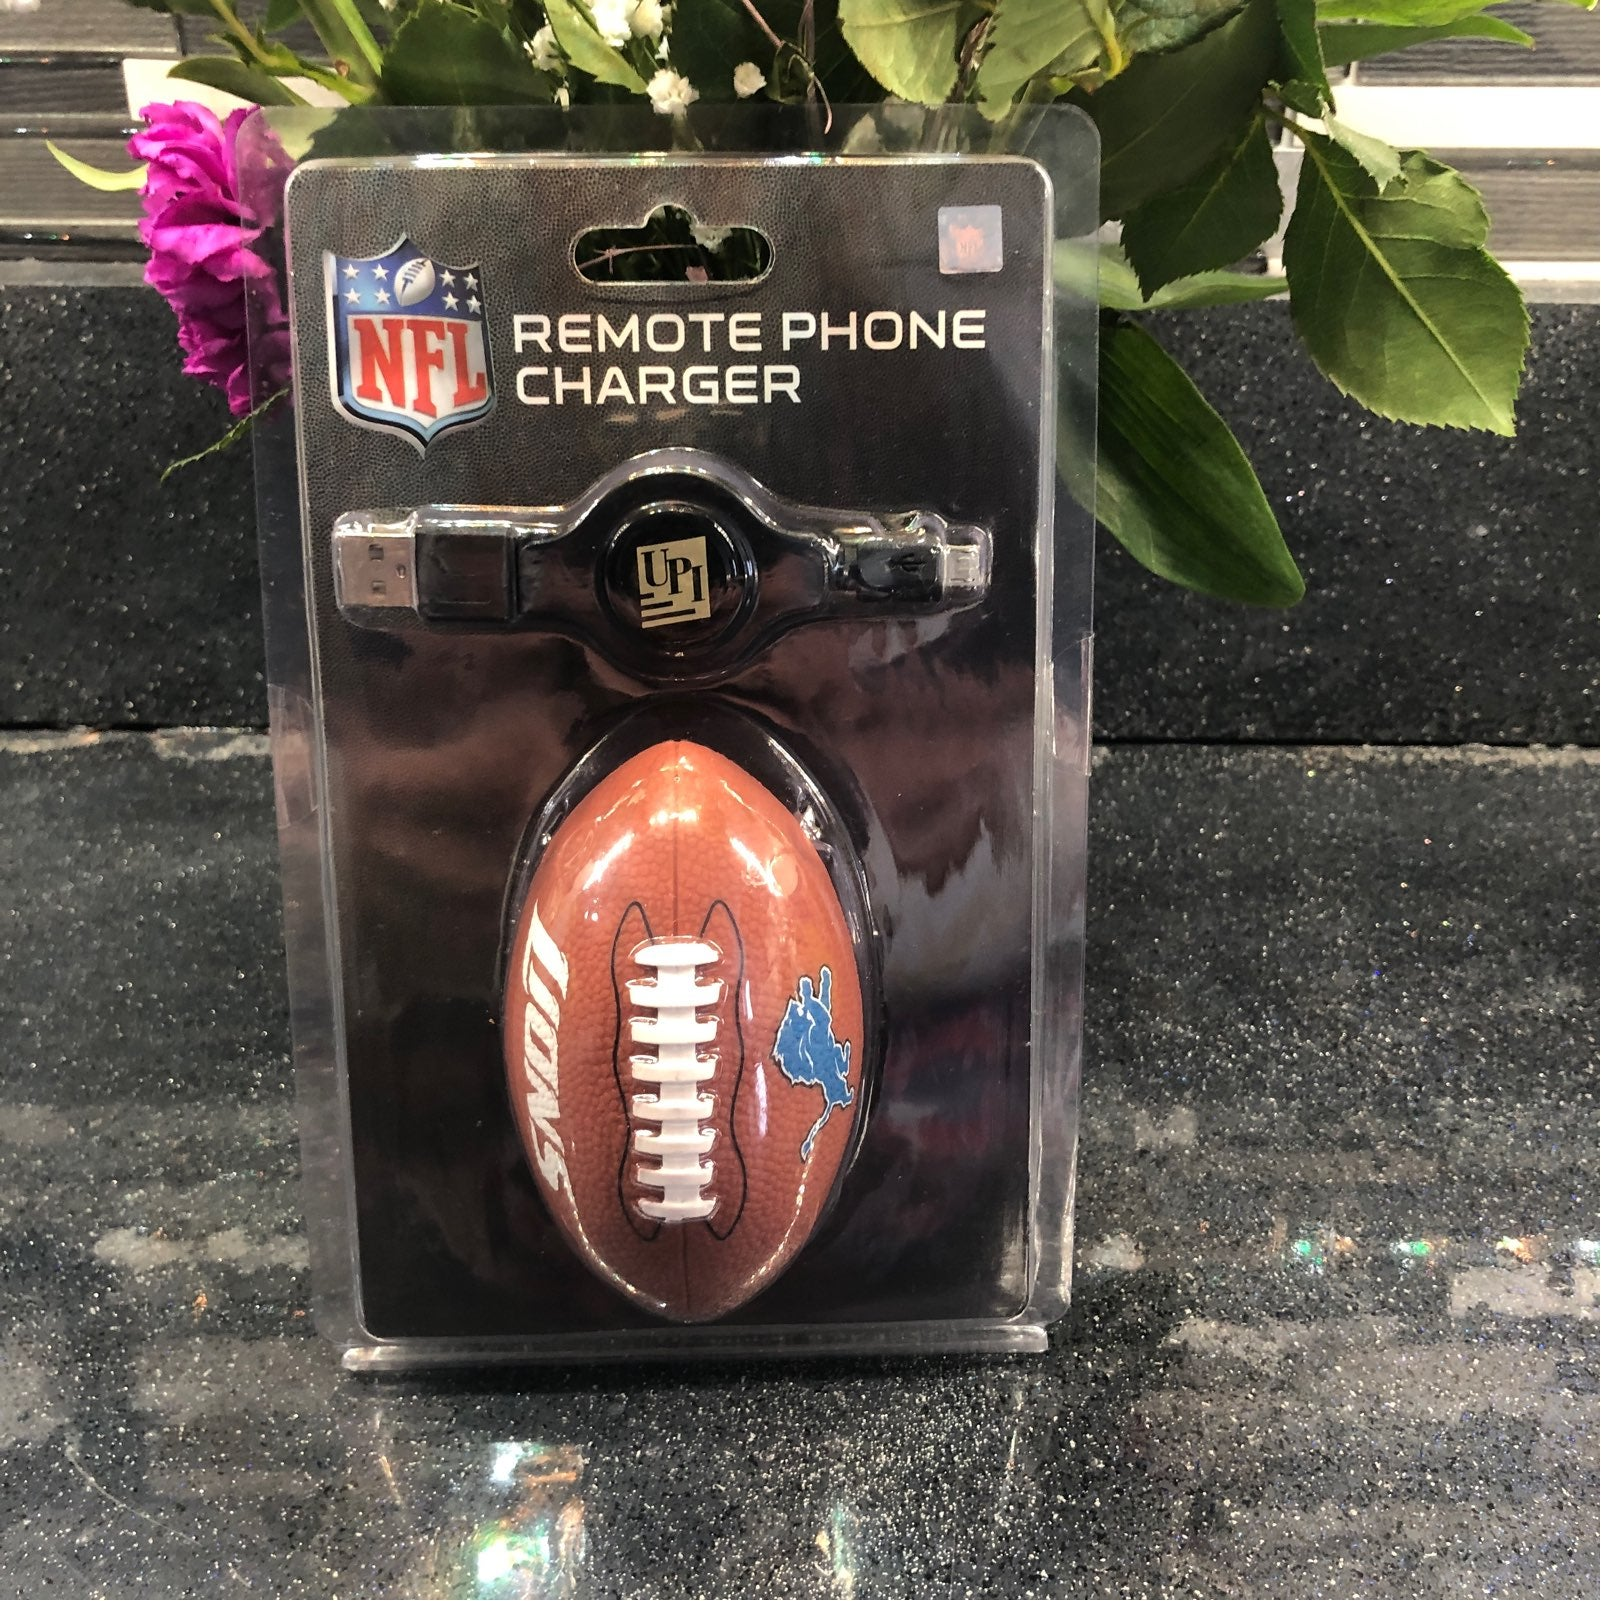 Remote portable phone charger Lions